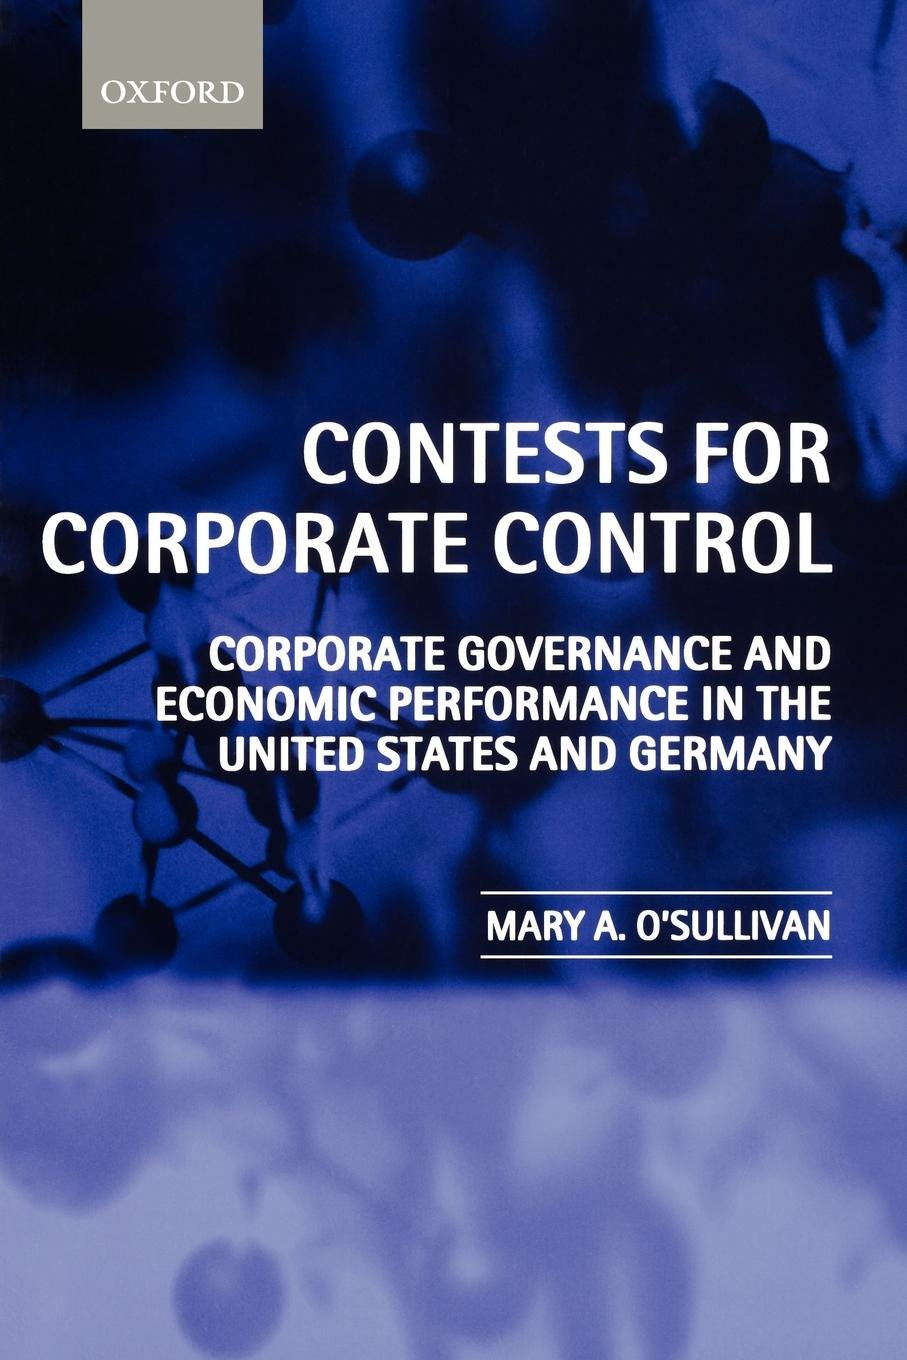 Contests for Corporate Control: Corporate Governance and Economic Performance in the United States and Germany by Oxford University Press